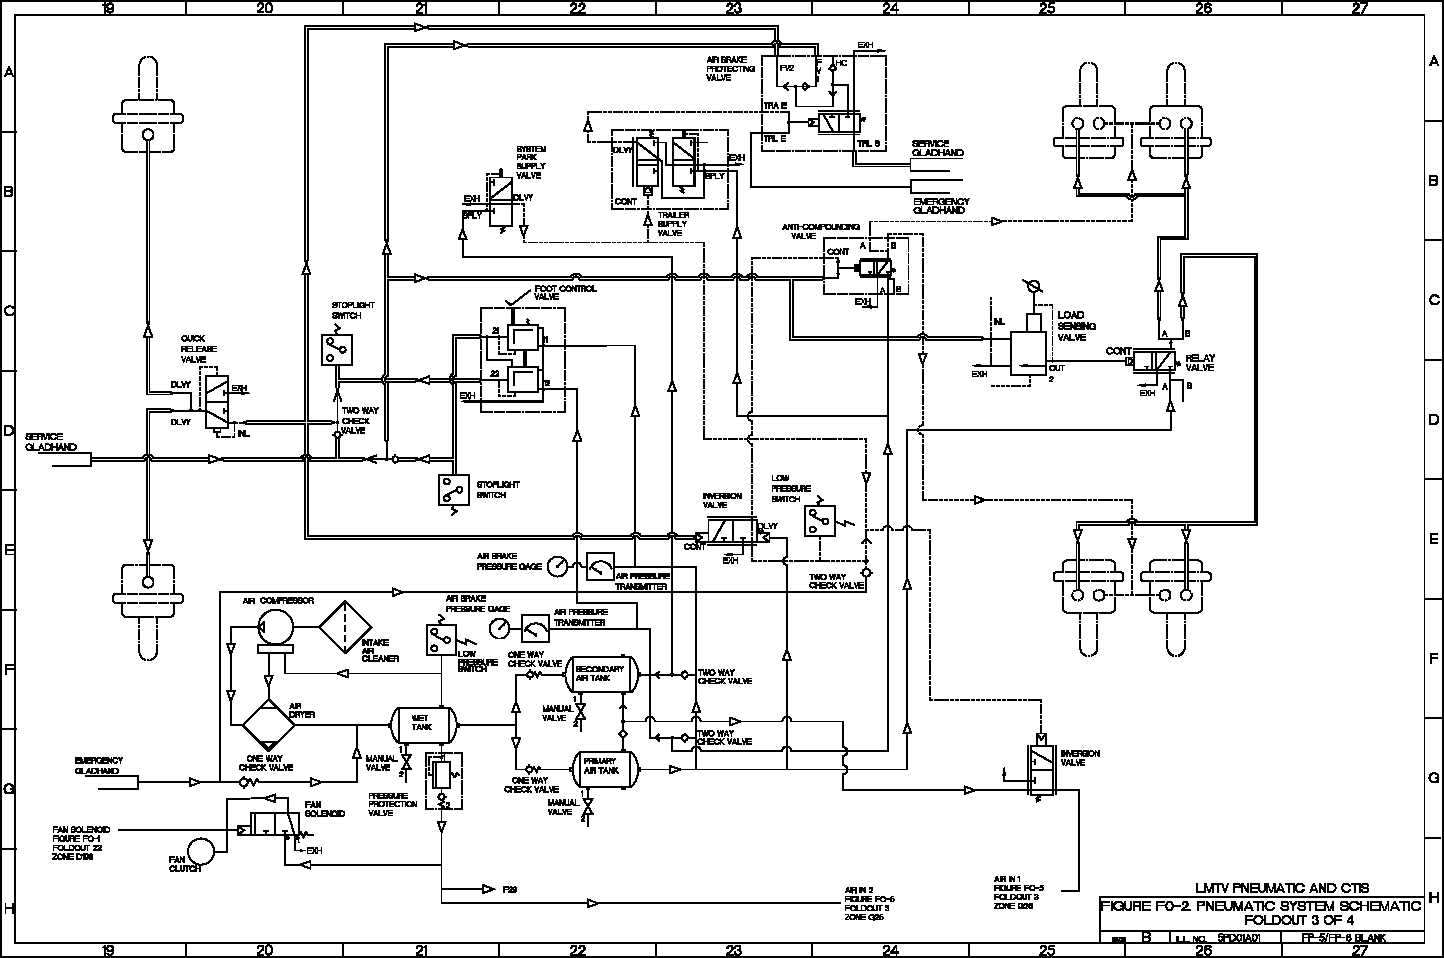 Pneumatic System Schematic